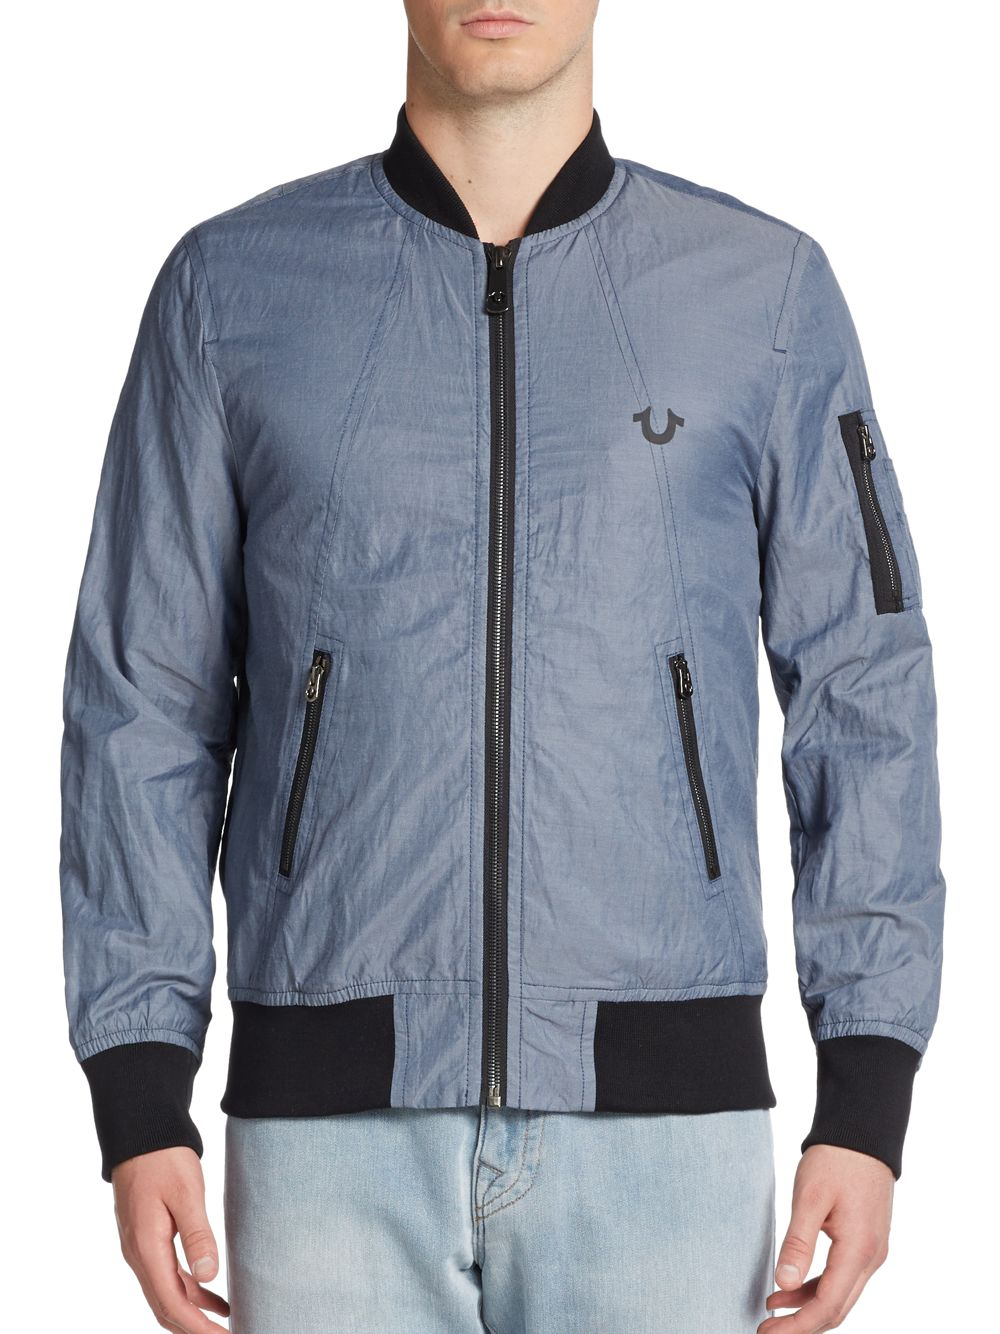 true religion cotton nylon bomber jacket in blue for men lyst. Black Bedroom Furniture Sets. Home Design Ideas